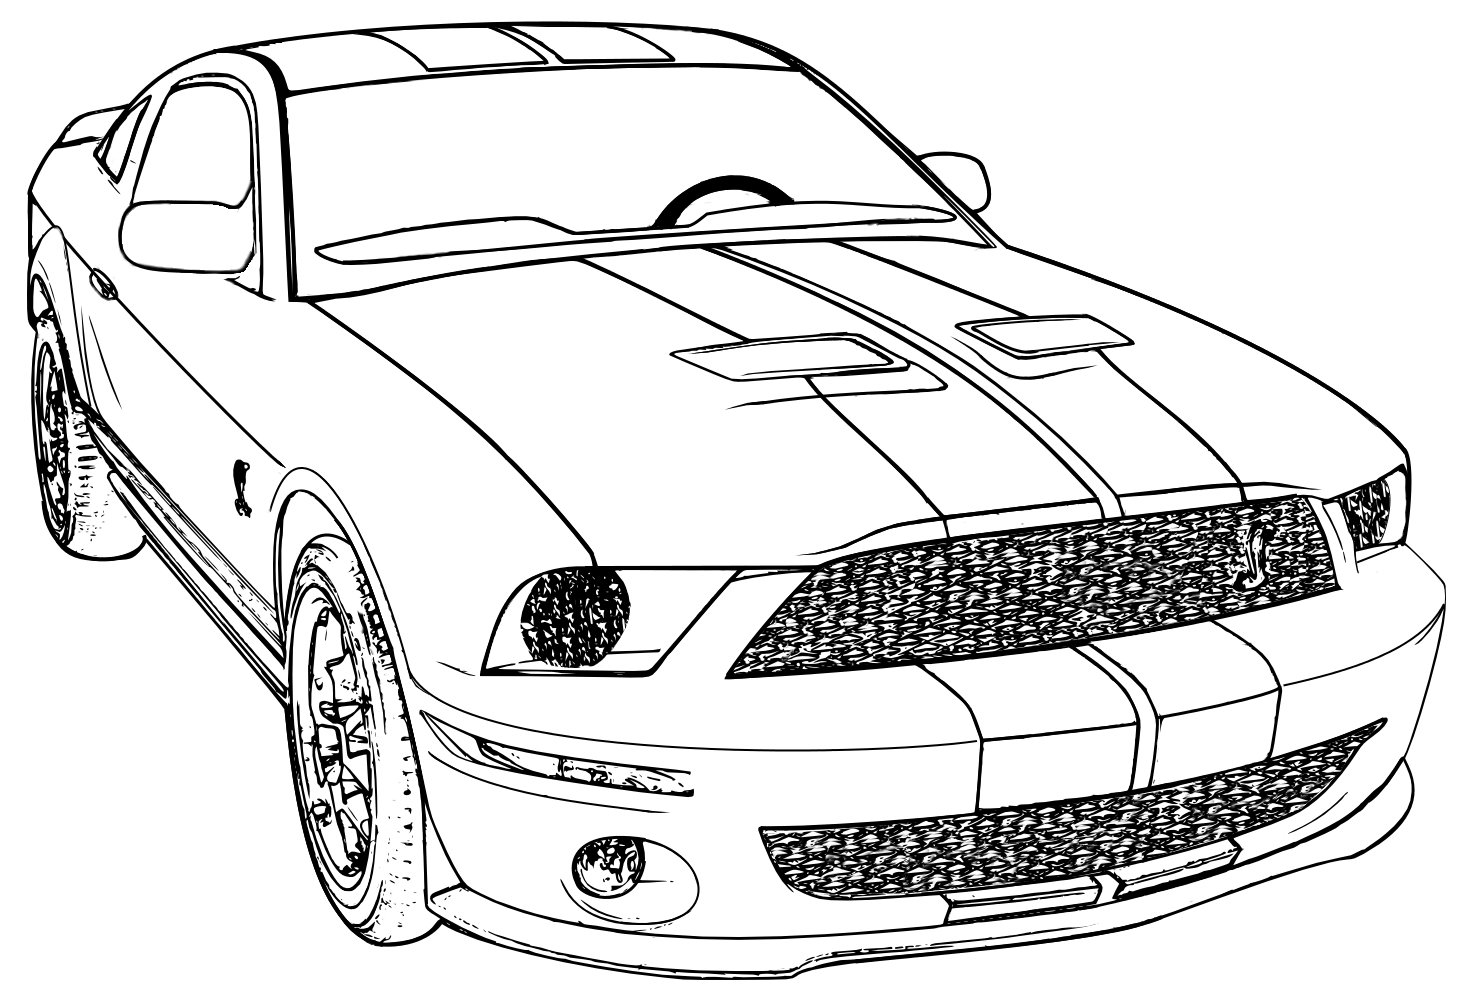 Mustang Coloring Pages isolution to Print Of Mustang Coloring Pages Beautiful ford Mustang Gt Car Coloring Pages Download